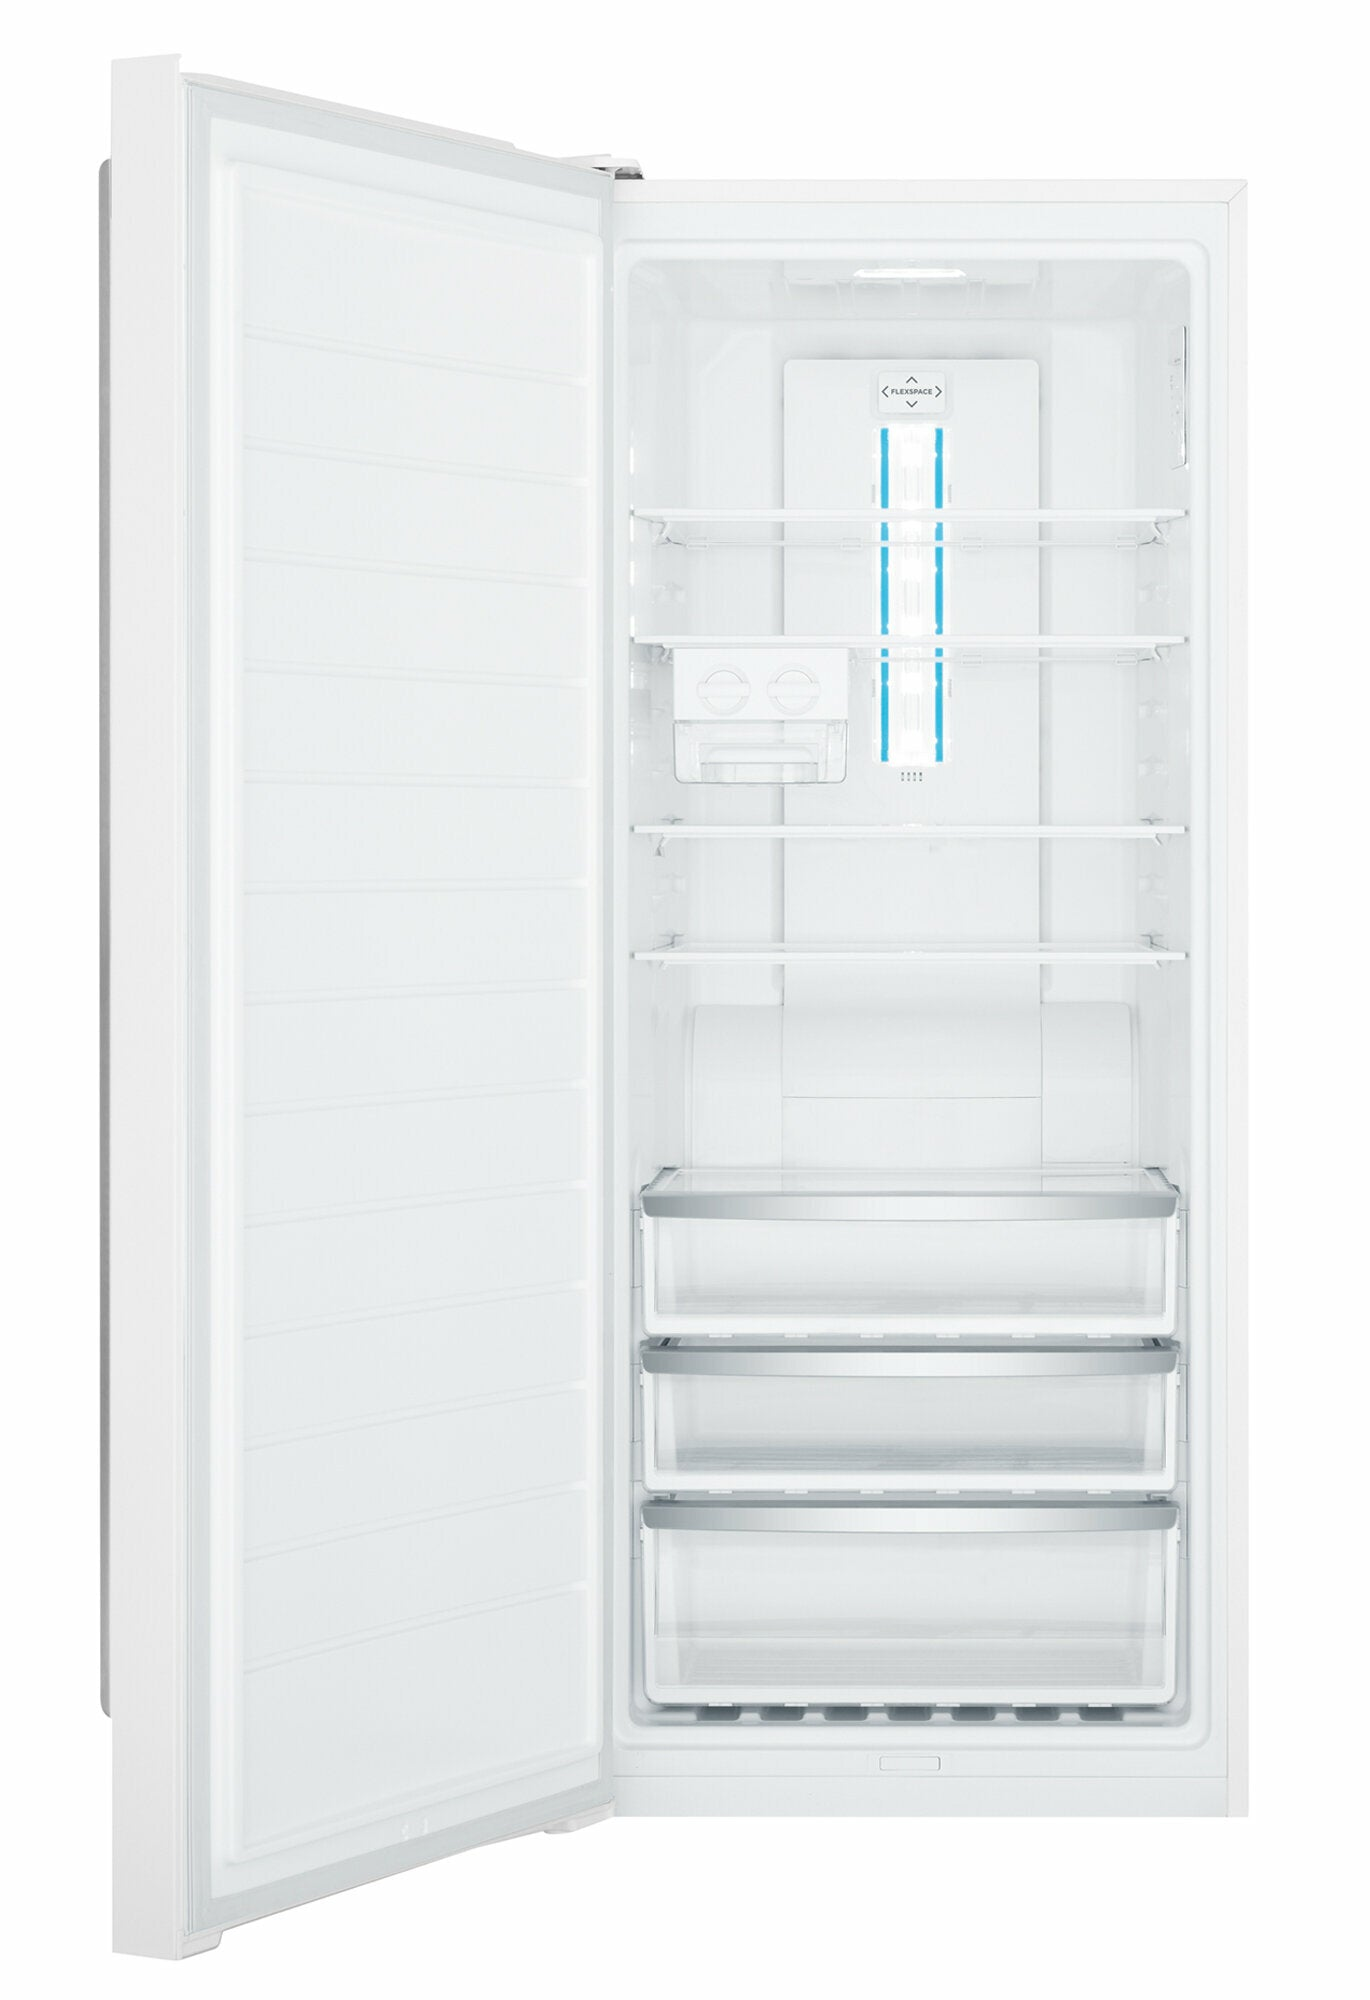 Westinghouse Upright Freezer 425 L - Brisbane Home Appliances